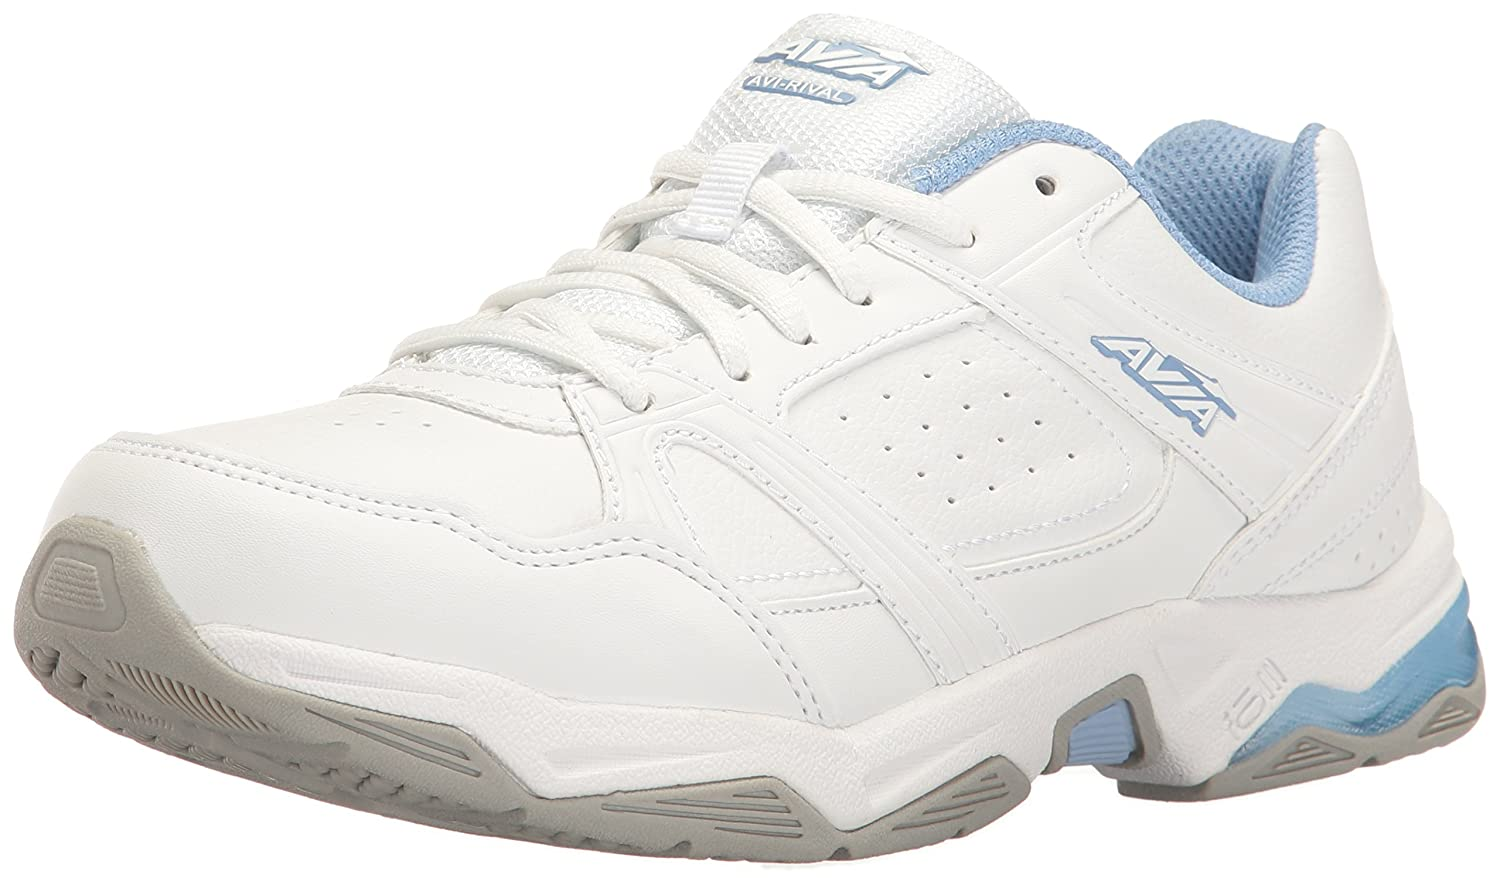 Avia Women's Avi-Rival Cross-Trainer Shoe B01IUH7Q6U 8 W US|White/Powder Blue